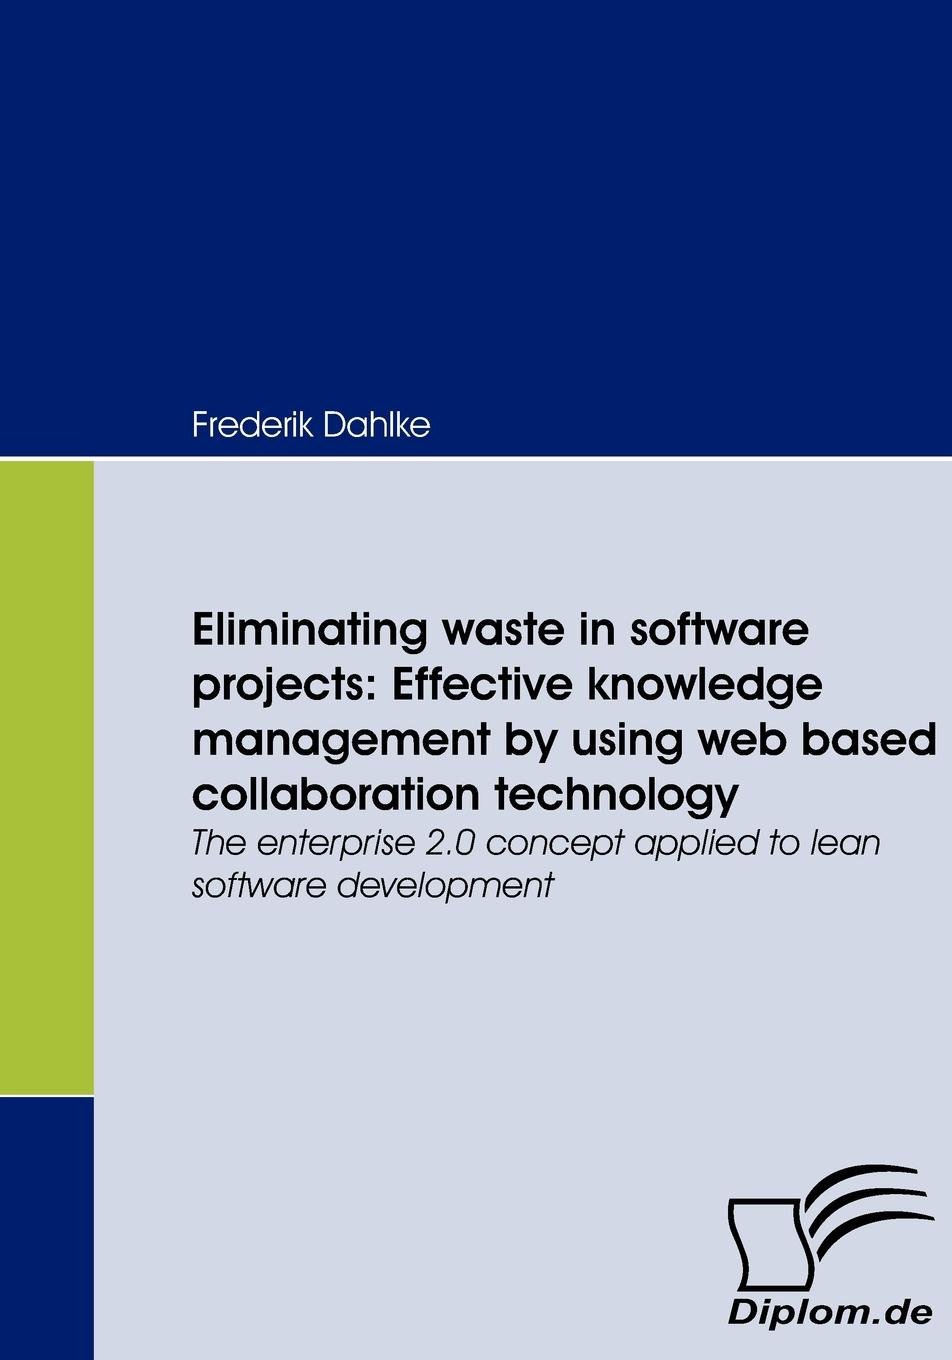 Frederik Dahlke Eliminating waste in software projects. Effective knowledge management by using web based collaboration technology mohamed msoroka project design and management knowledge and project management skills